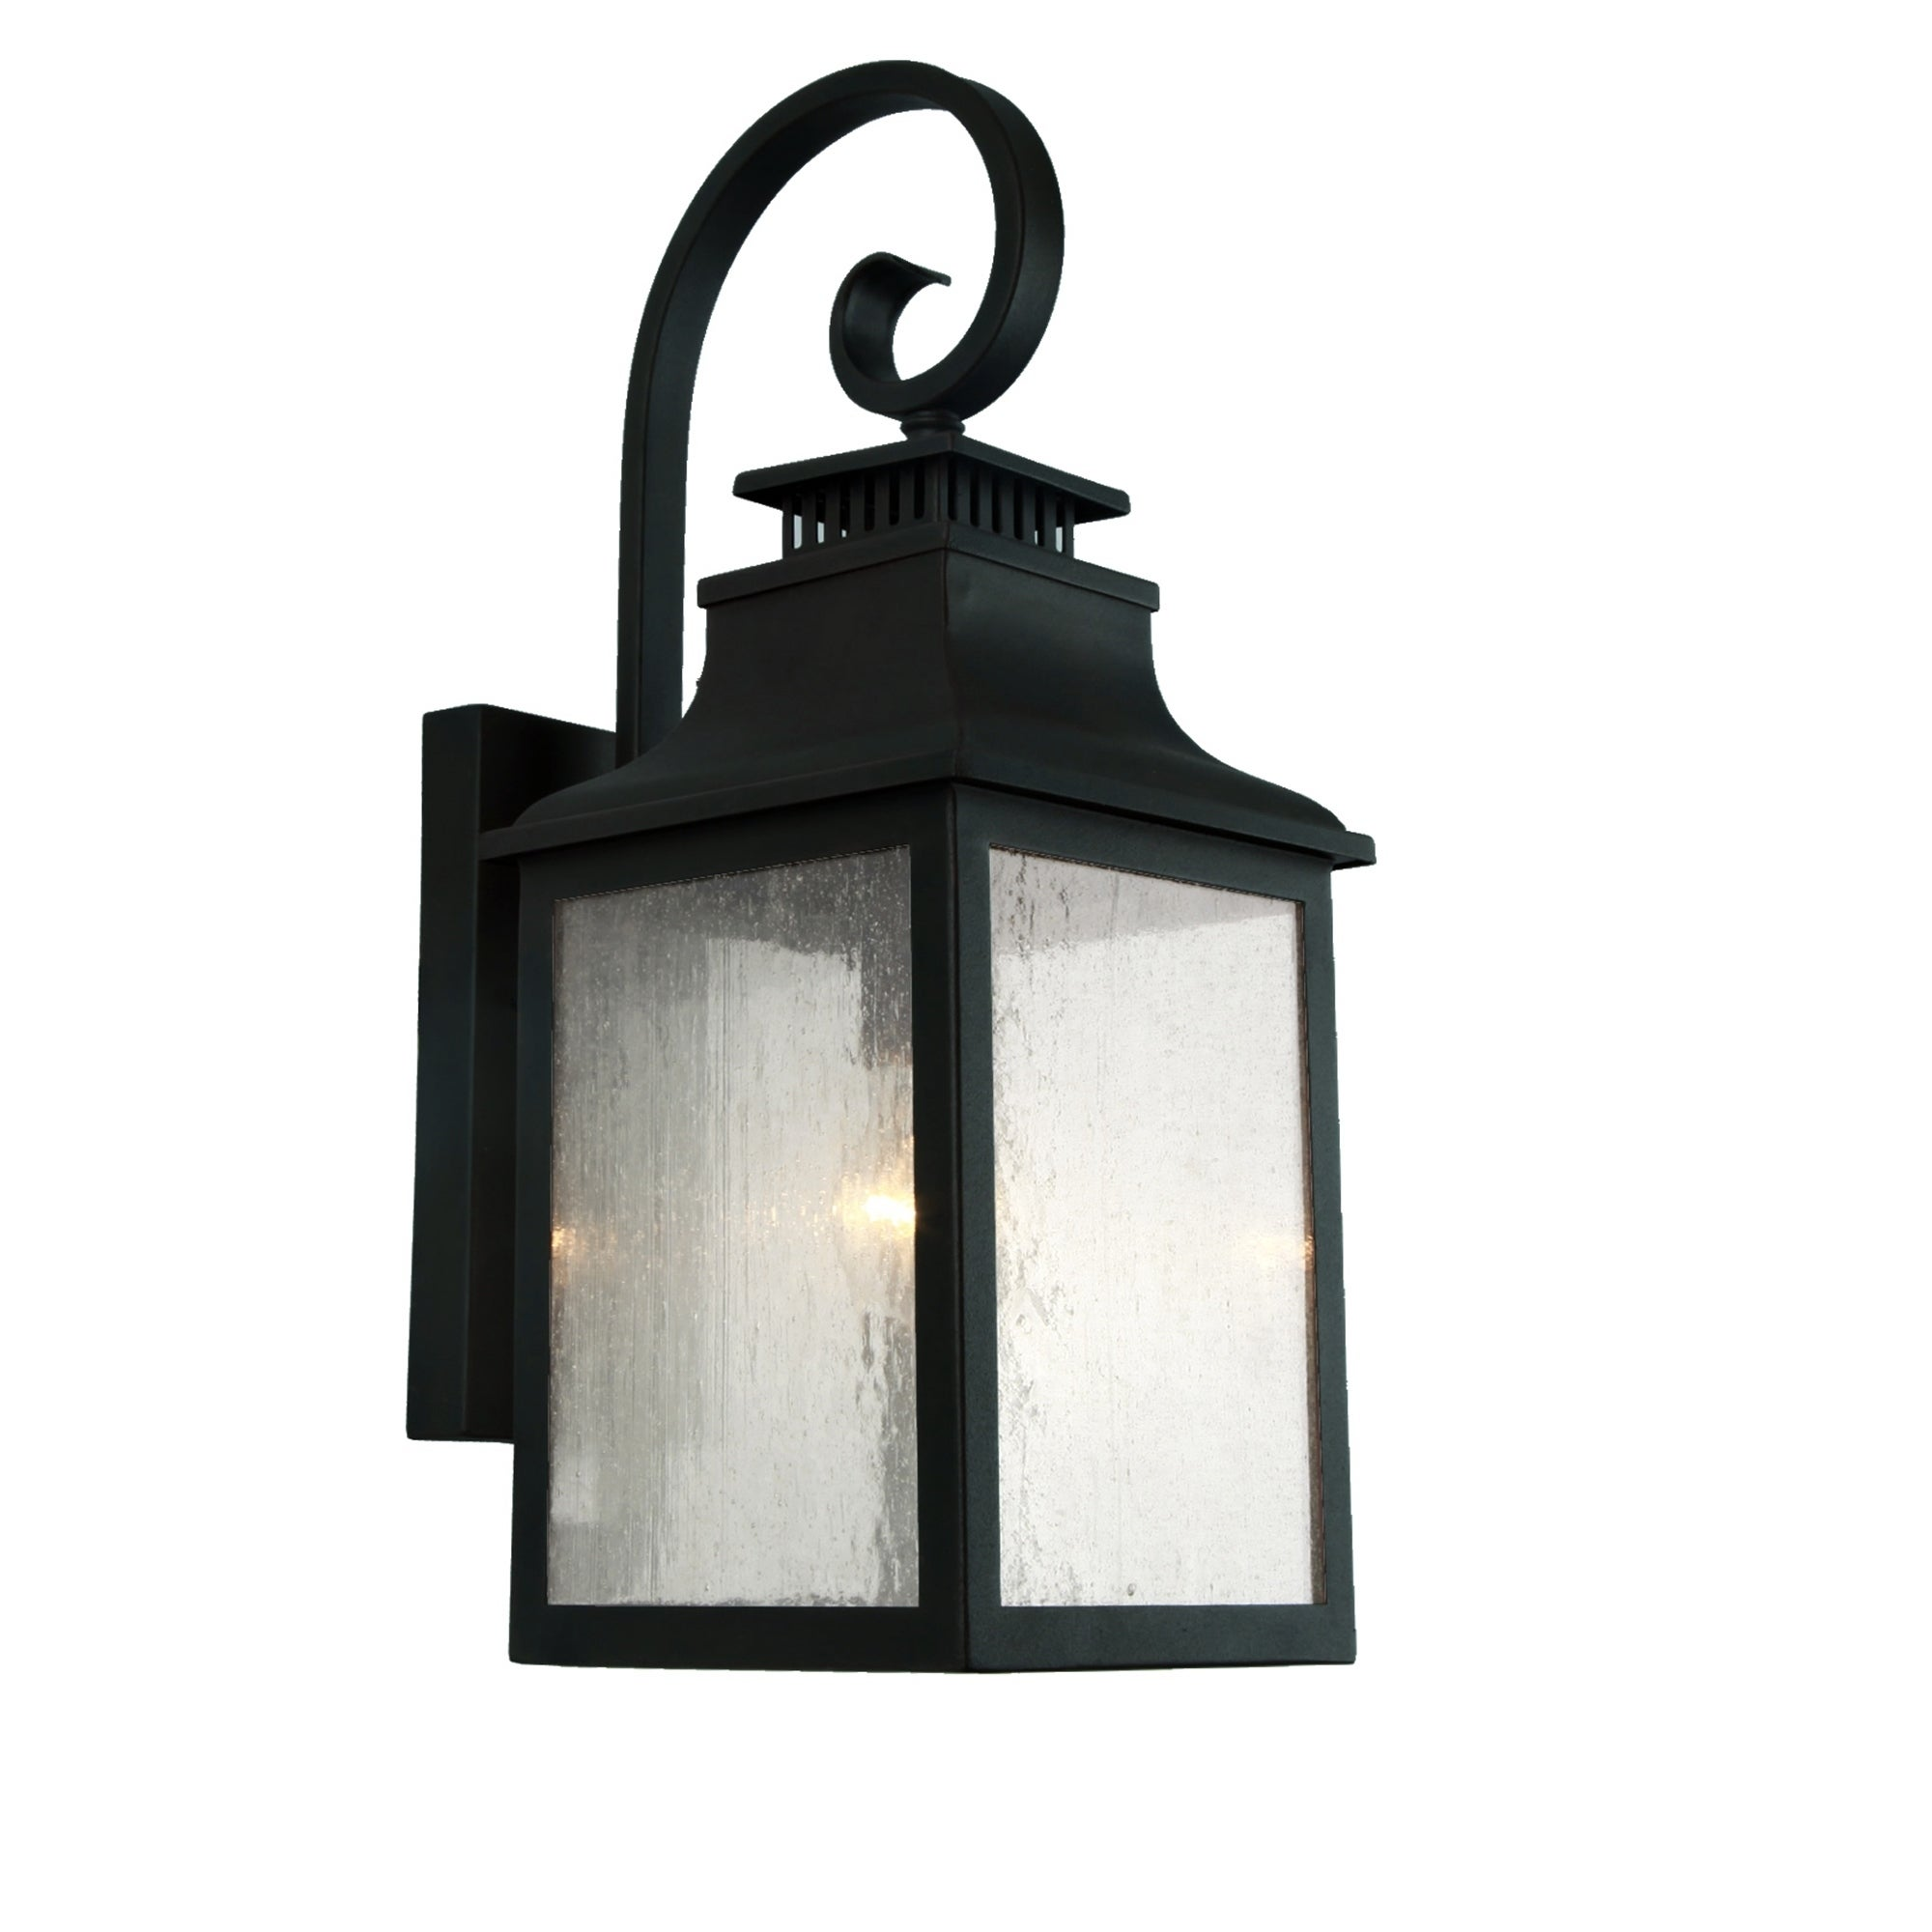 Morgan 1 Light Outdoor Wall Mounted Light In Imperial Black On Sale Overstock 19844140